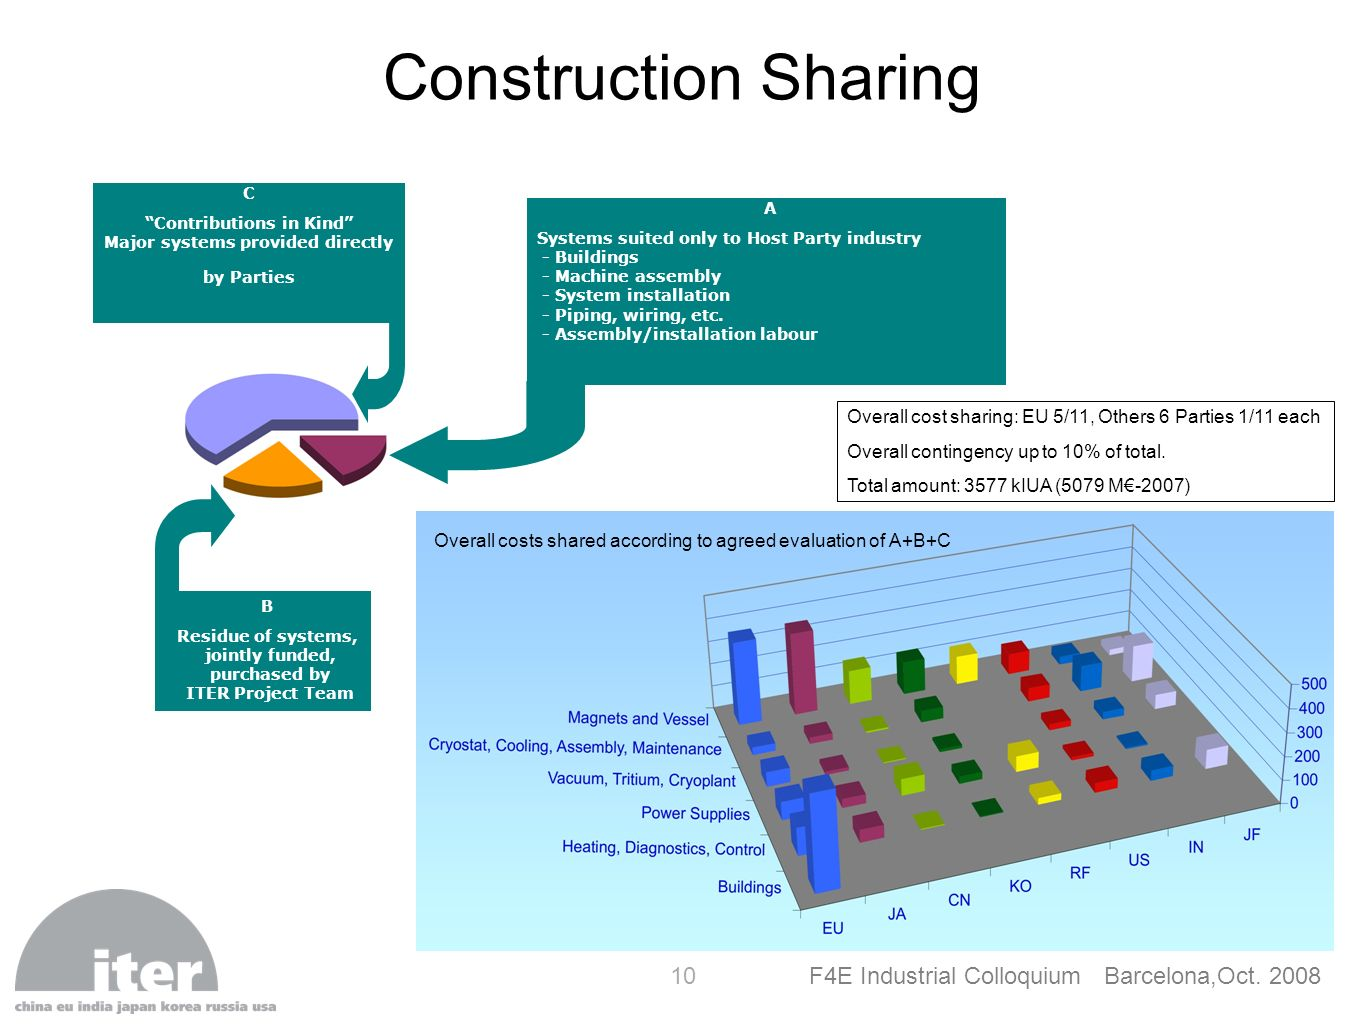 Construction Sharing C. Contributions in Kind Major systems provided directly by Parties. A.